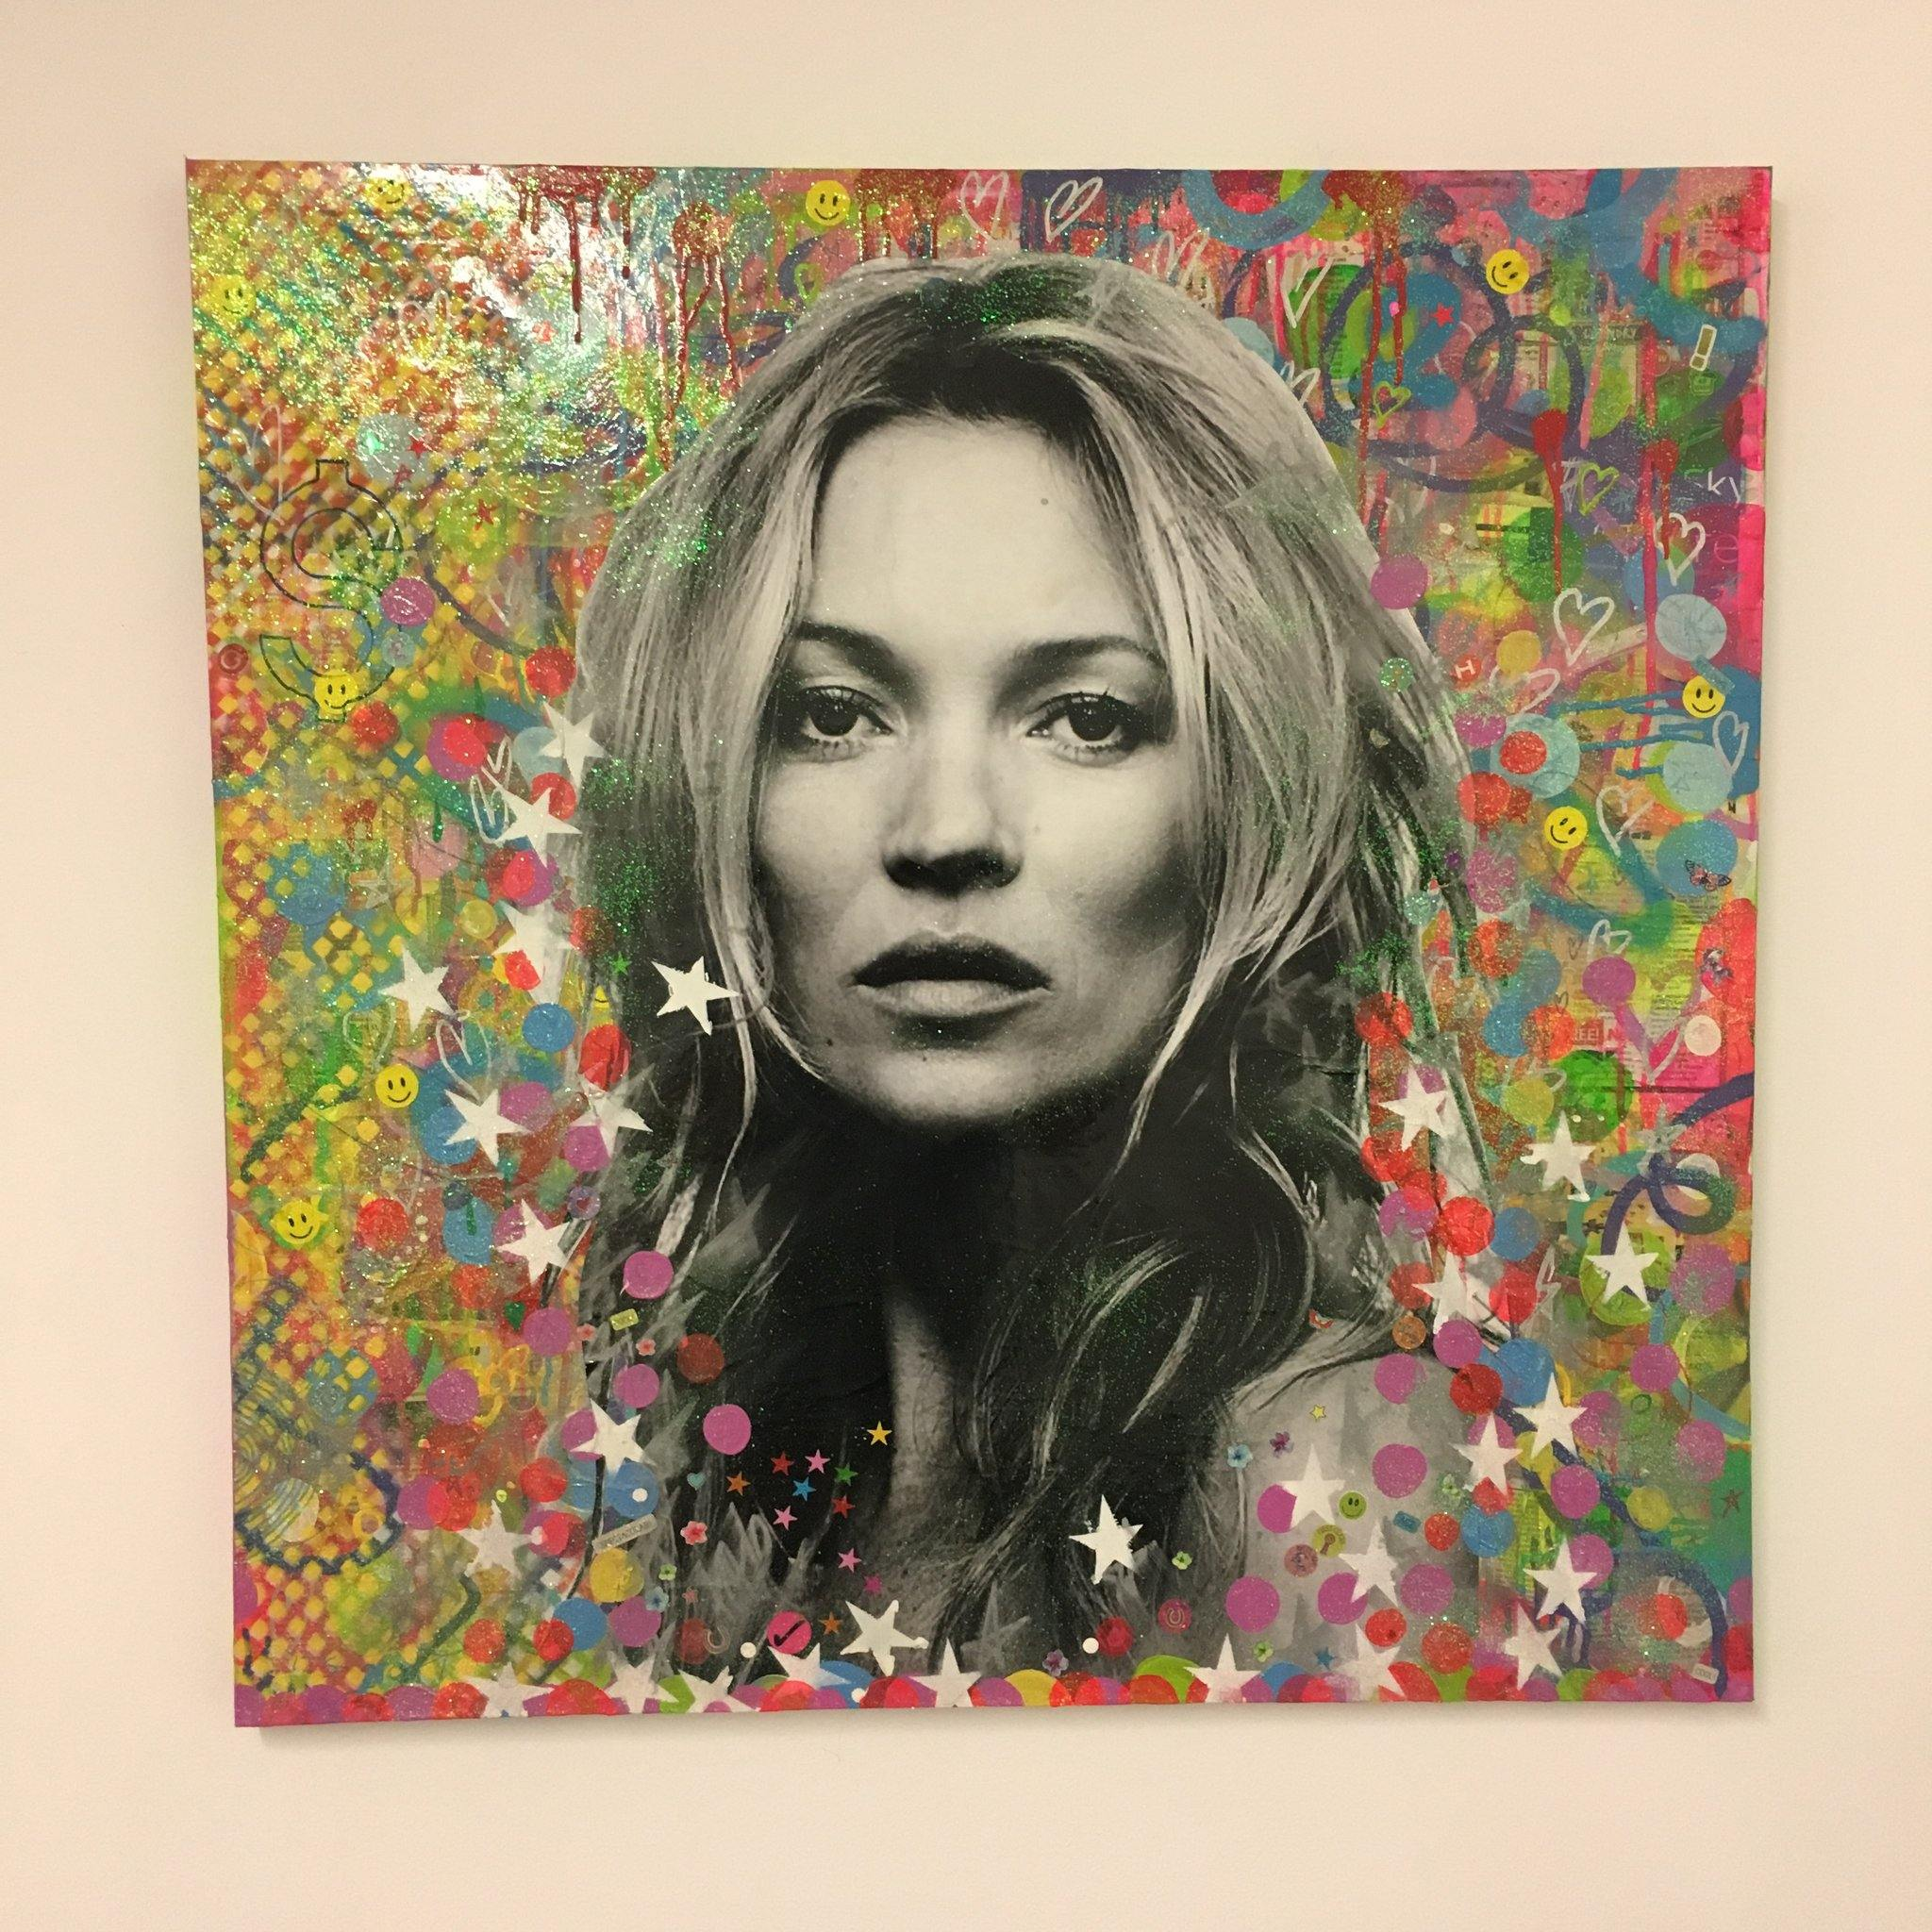 Super Kate by Barrie J Davies 2018, Mixed media on canvas, 90cm x 90cm, unframed. Barrie J Davies is an Artist - Pop Art and Street art inspired Artist based in Brighton England UK - Pop Art Paintings, Street Art Prints & Editions available.